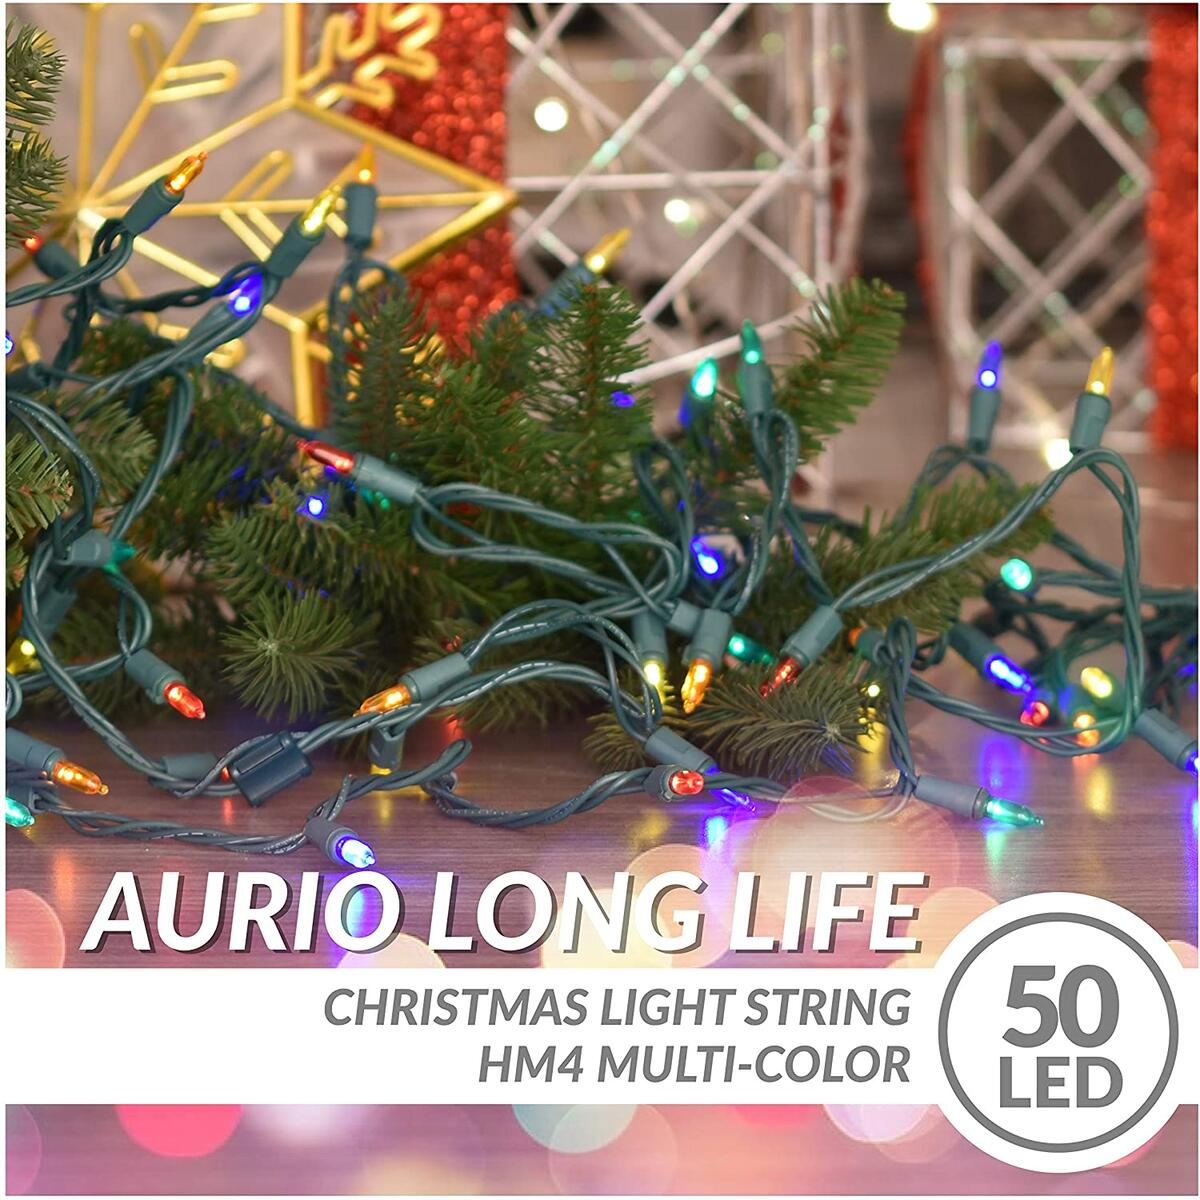 Aurio Christmas Lights Multicolor, 12 ft. 50-Count LED End-to-End Connectable Mini Christmas String Lights, Light Strings for Party, Wedding, Indoor & Outdoor Christmas Tree Decoration, Multi Color